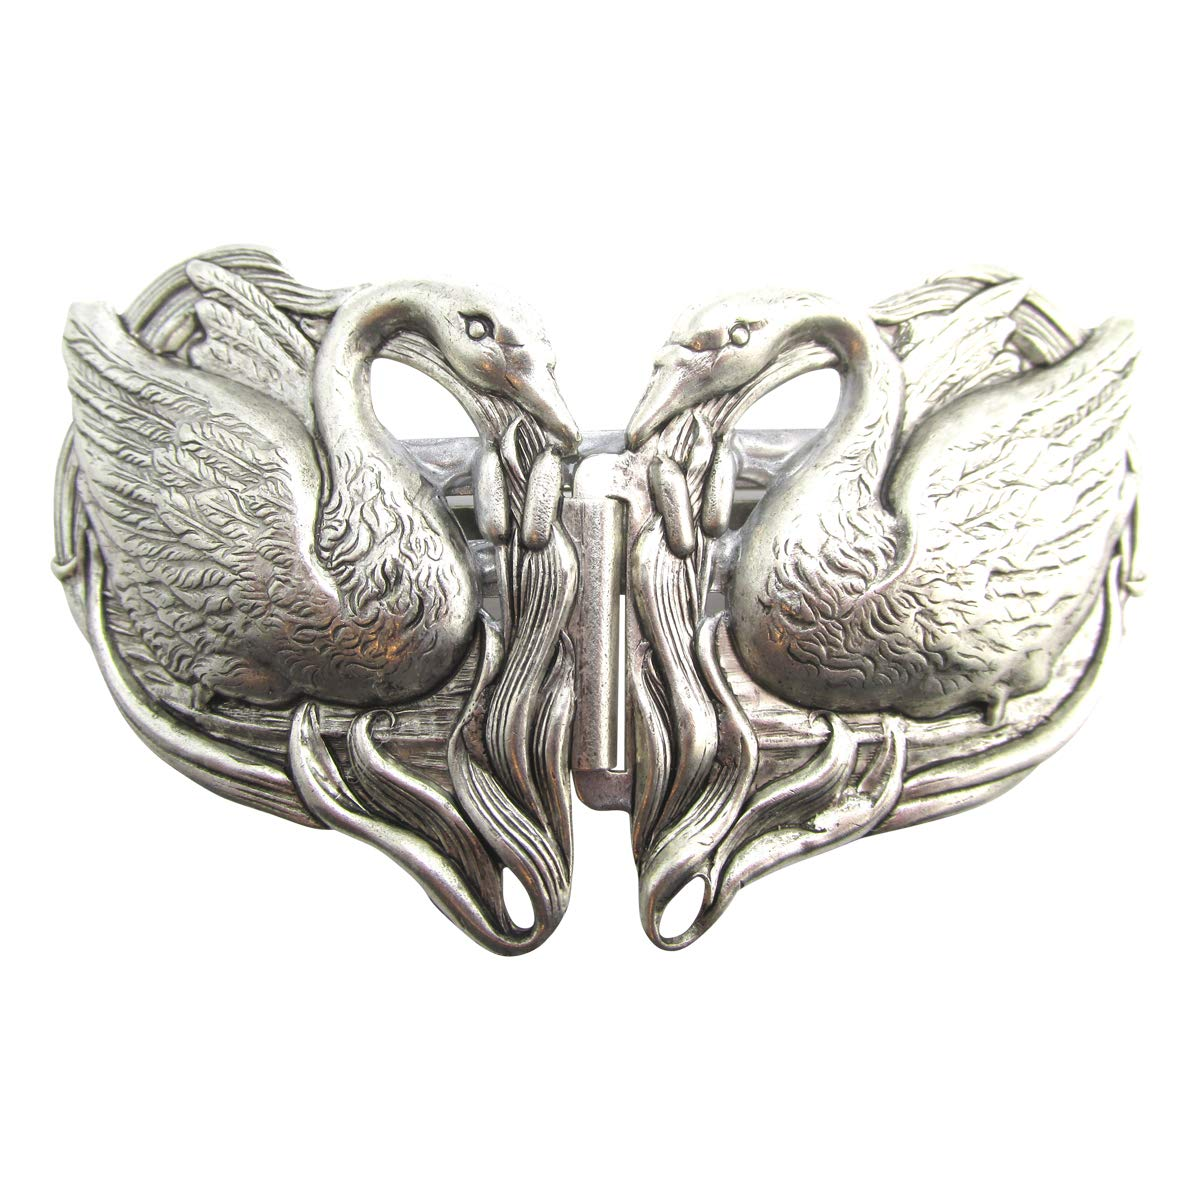 Swan Hair Clips Silver Barrettes French Back Wedding Hair Pieces Accessories by Angelina Verbuni